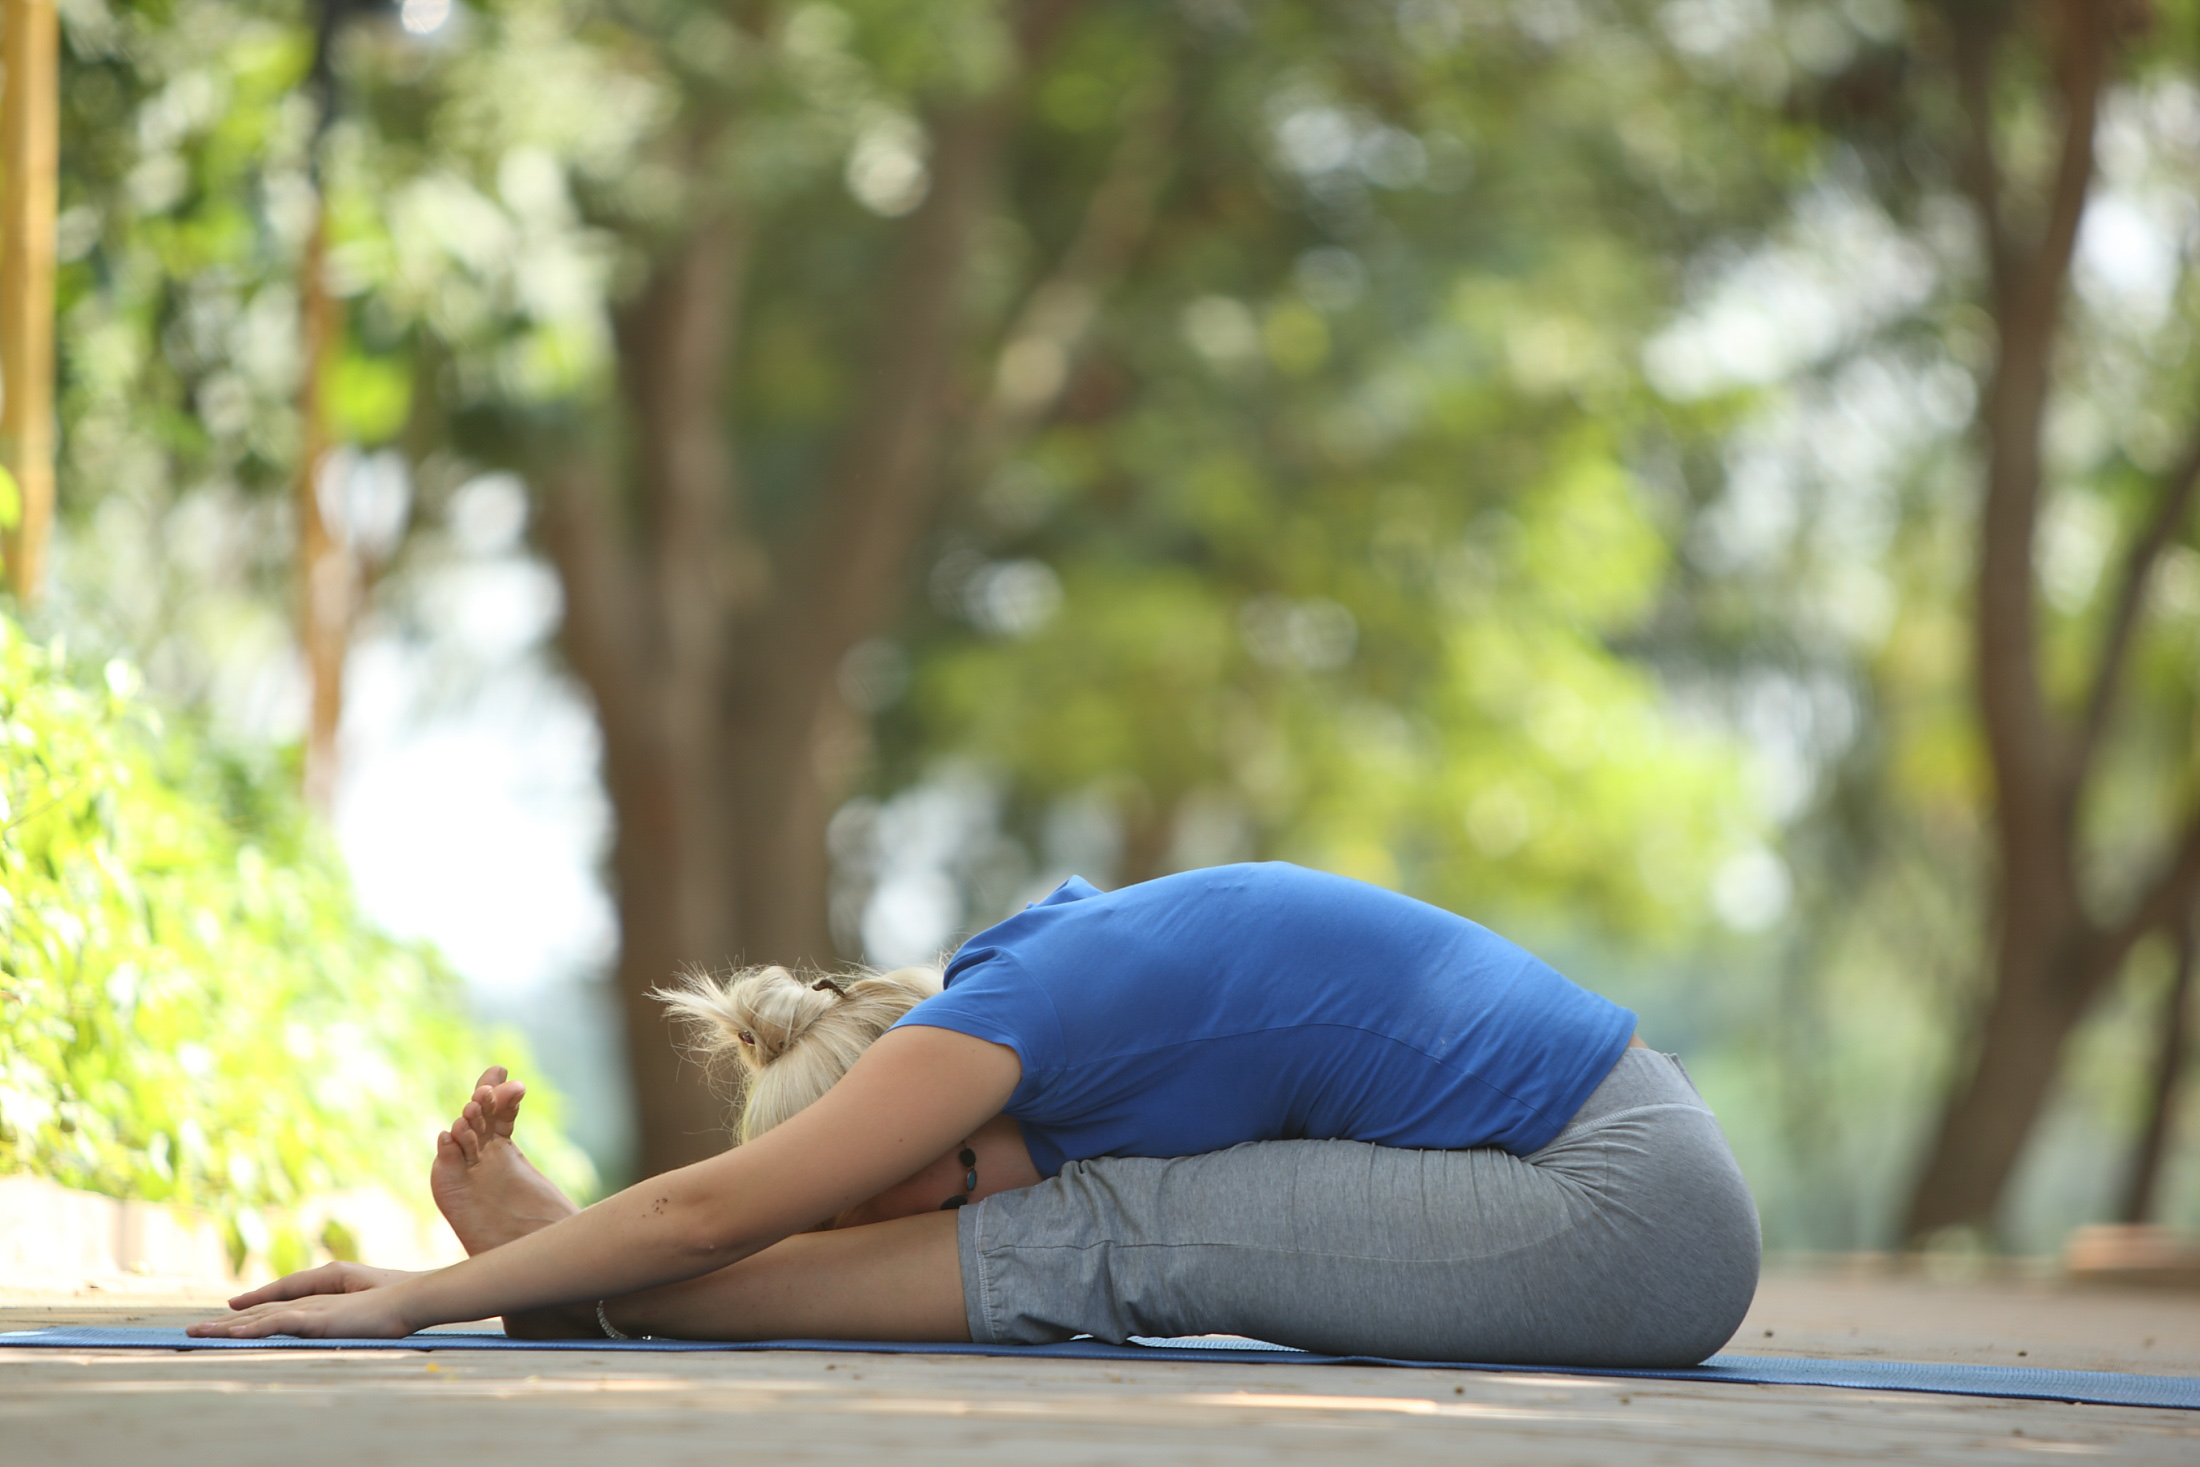 Paschimottanasana (Seated Forward Bend Yoga Pose) for good digestion